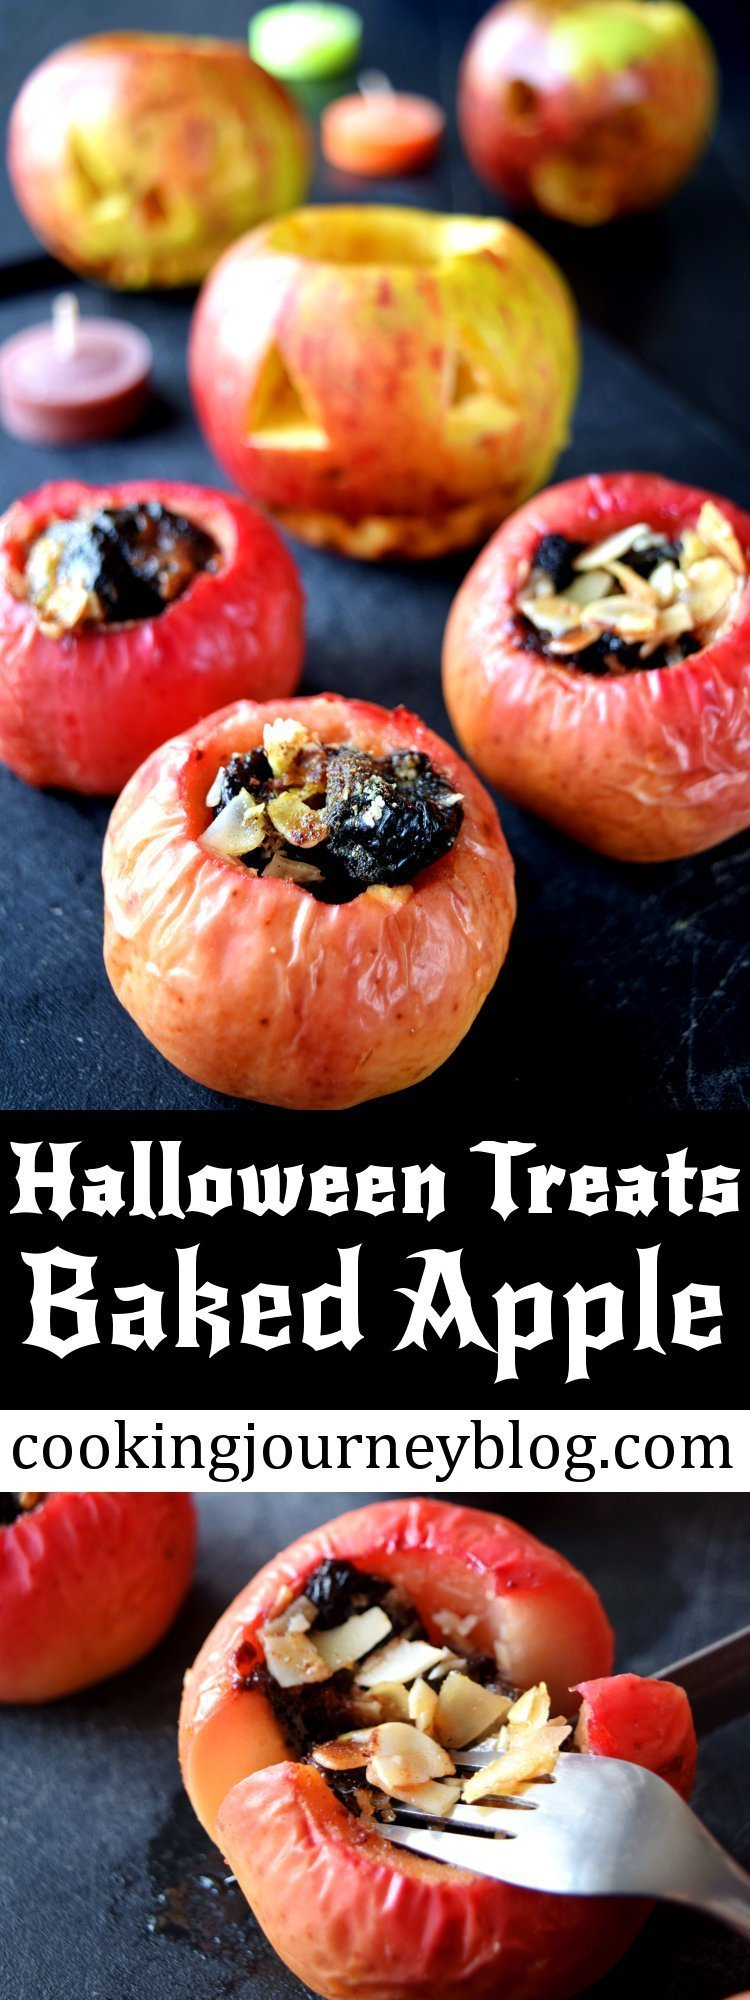 Baked apple – Healthy Halloween treats